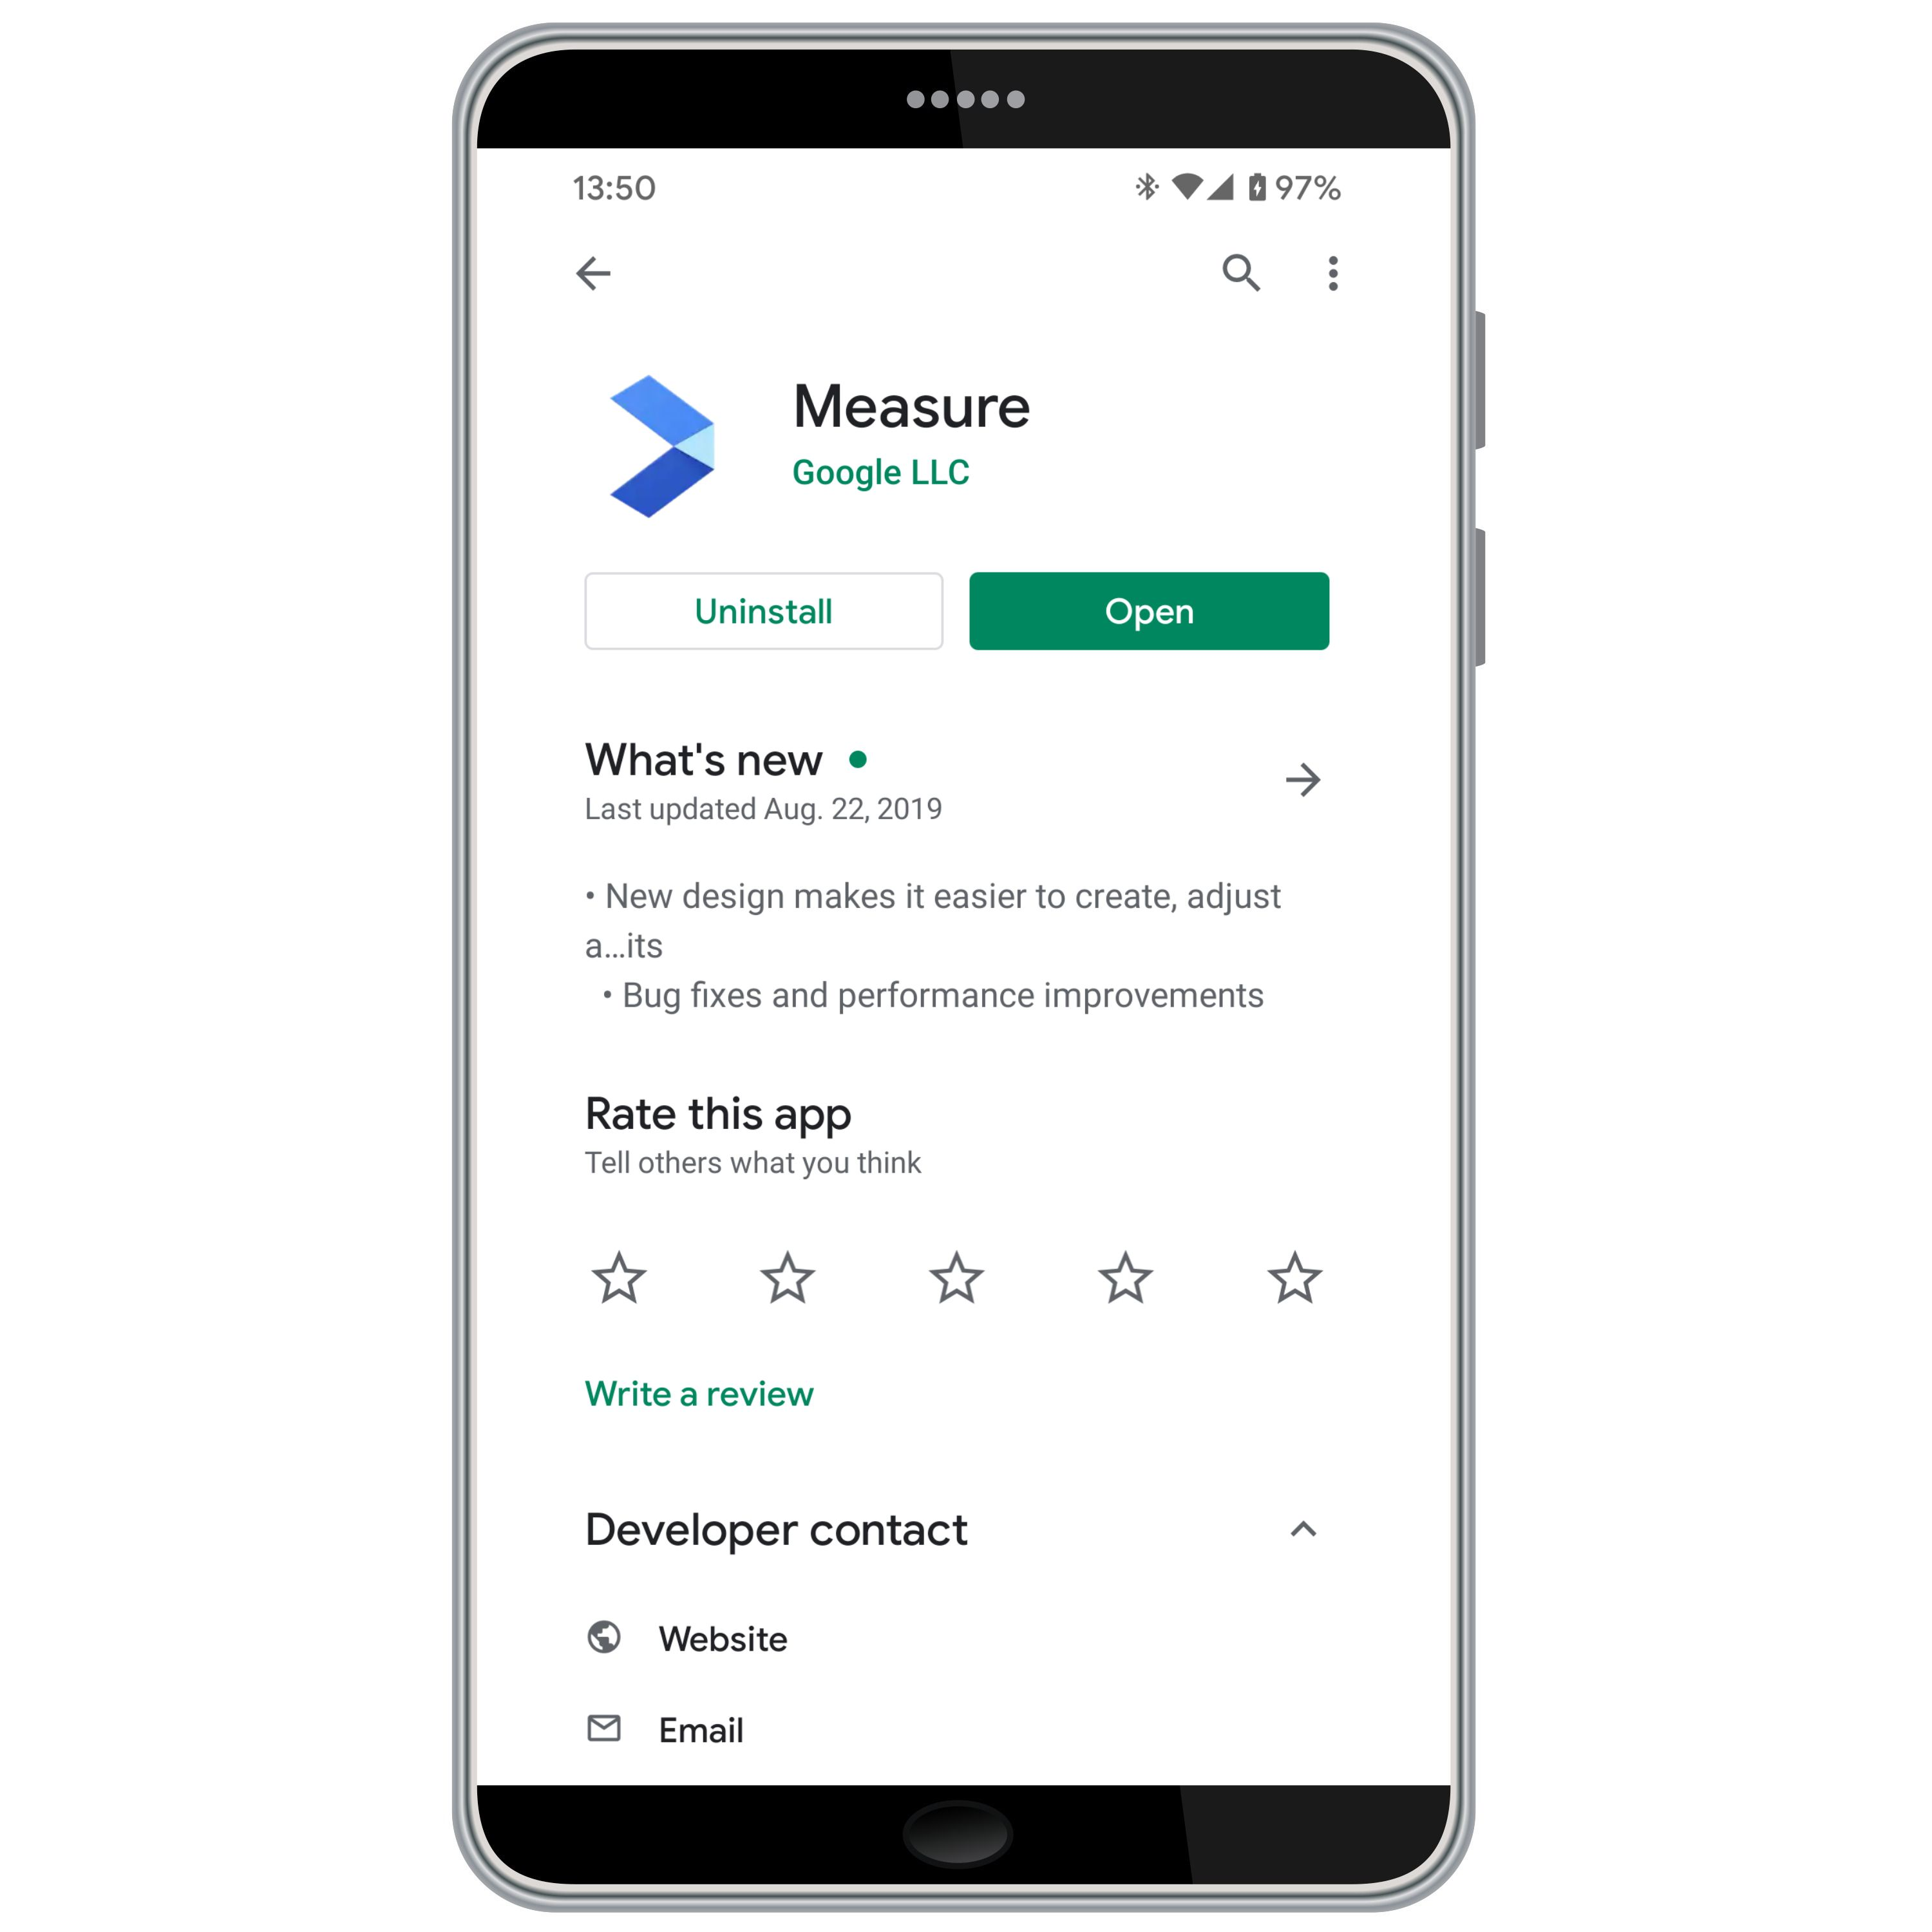 How to Use the Measure App on Android Devices